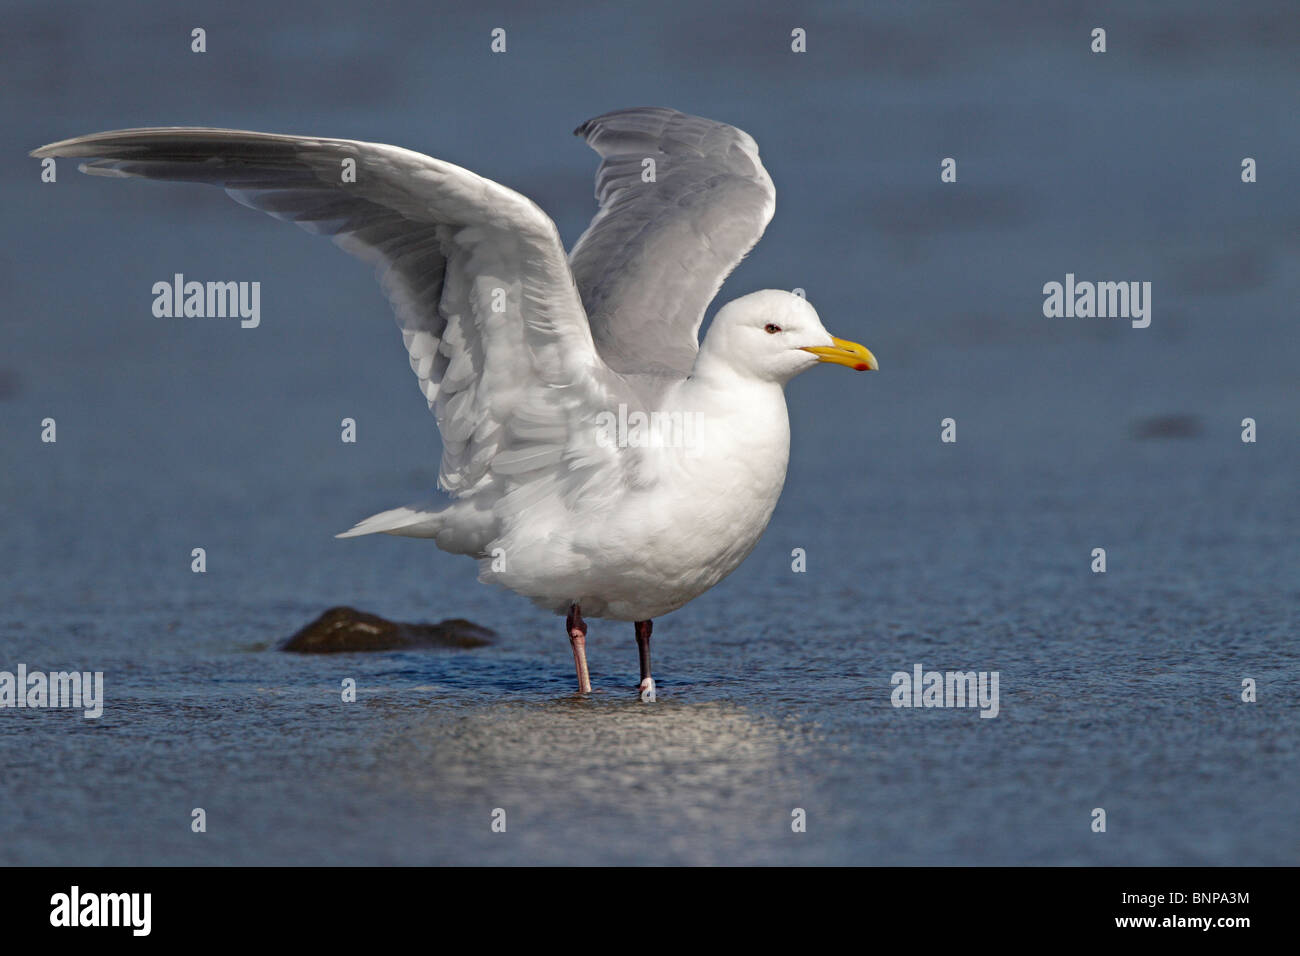 A Glaucous-winged Gull - Stock Image